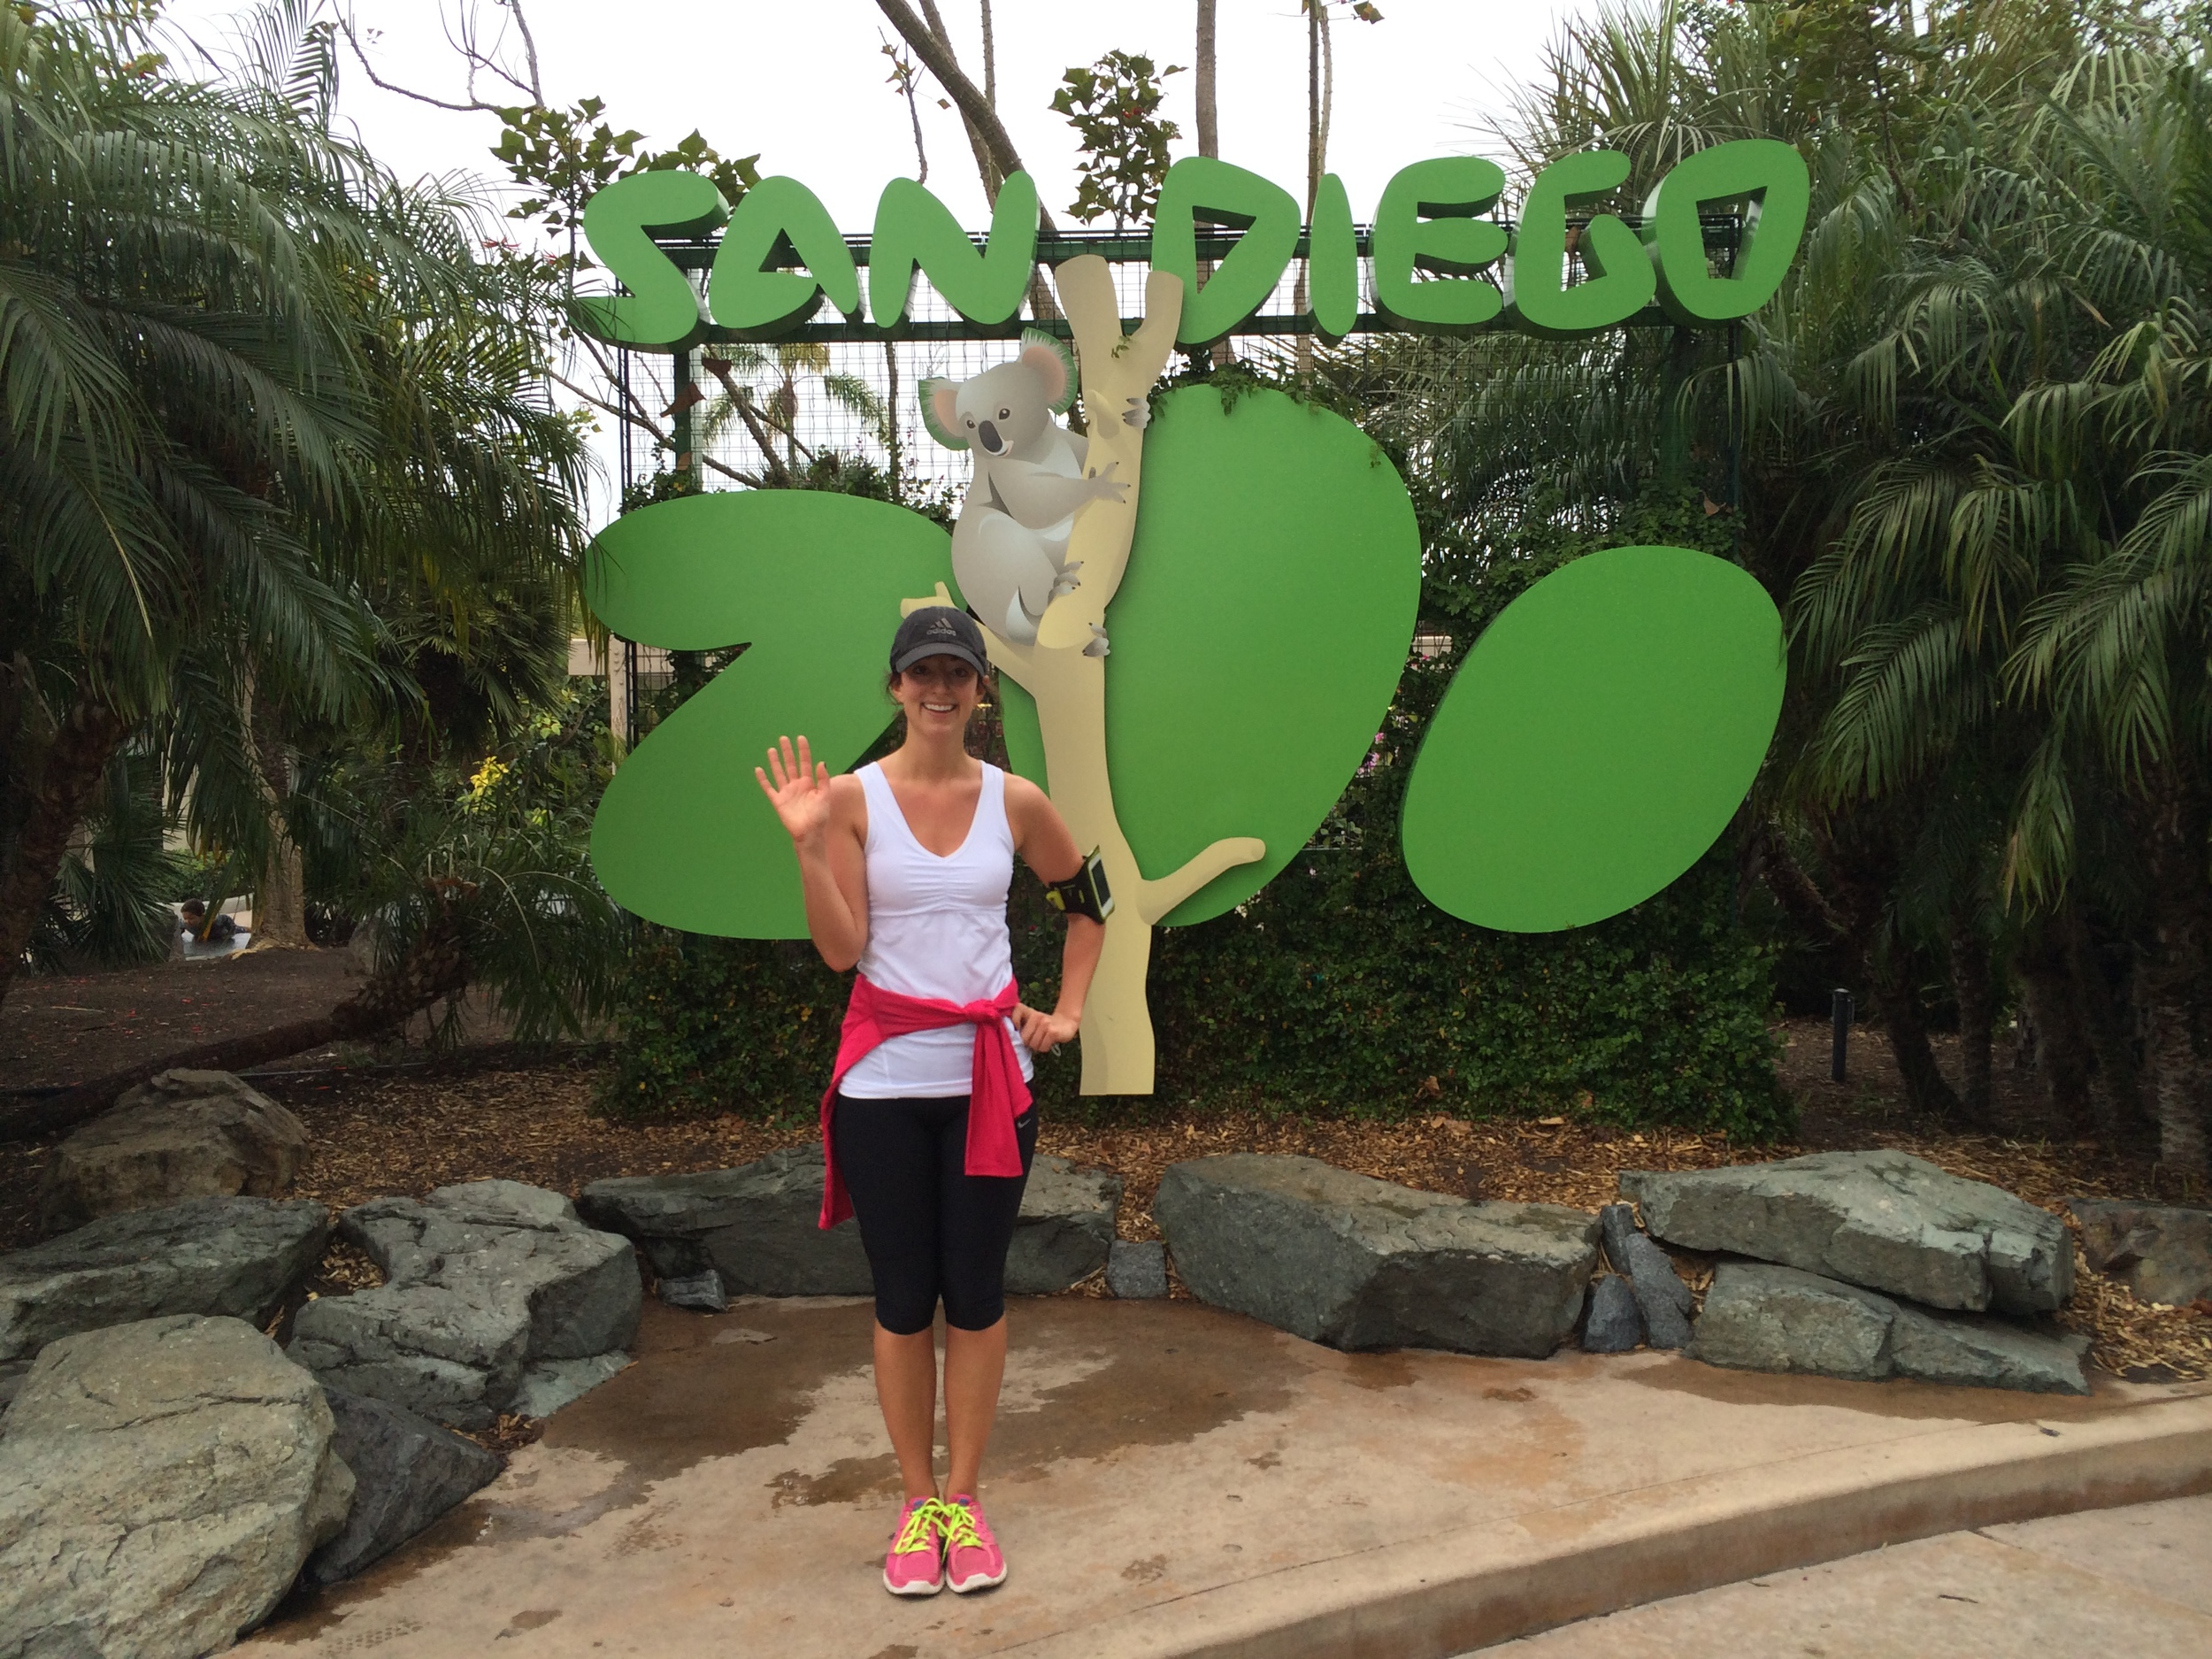 CREATE YOUR OWN SAN DIEGO RUNNING EXPERIENCE